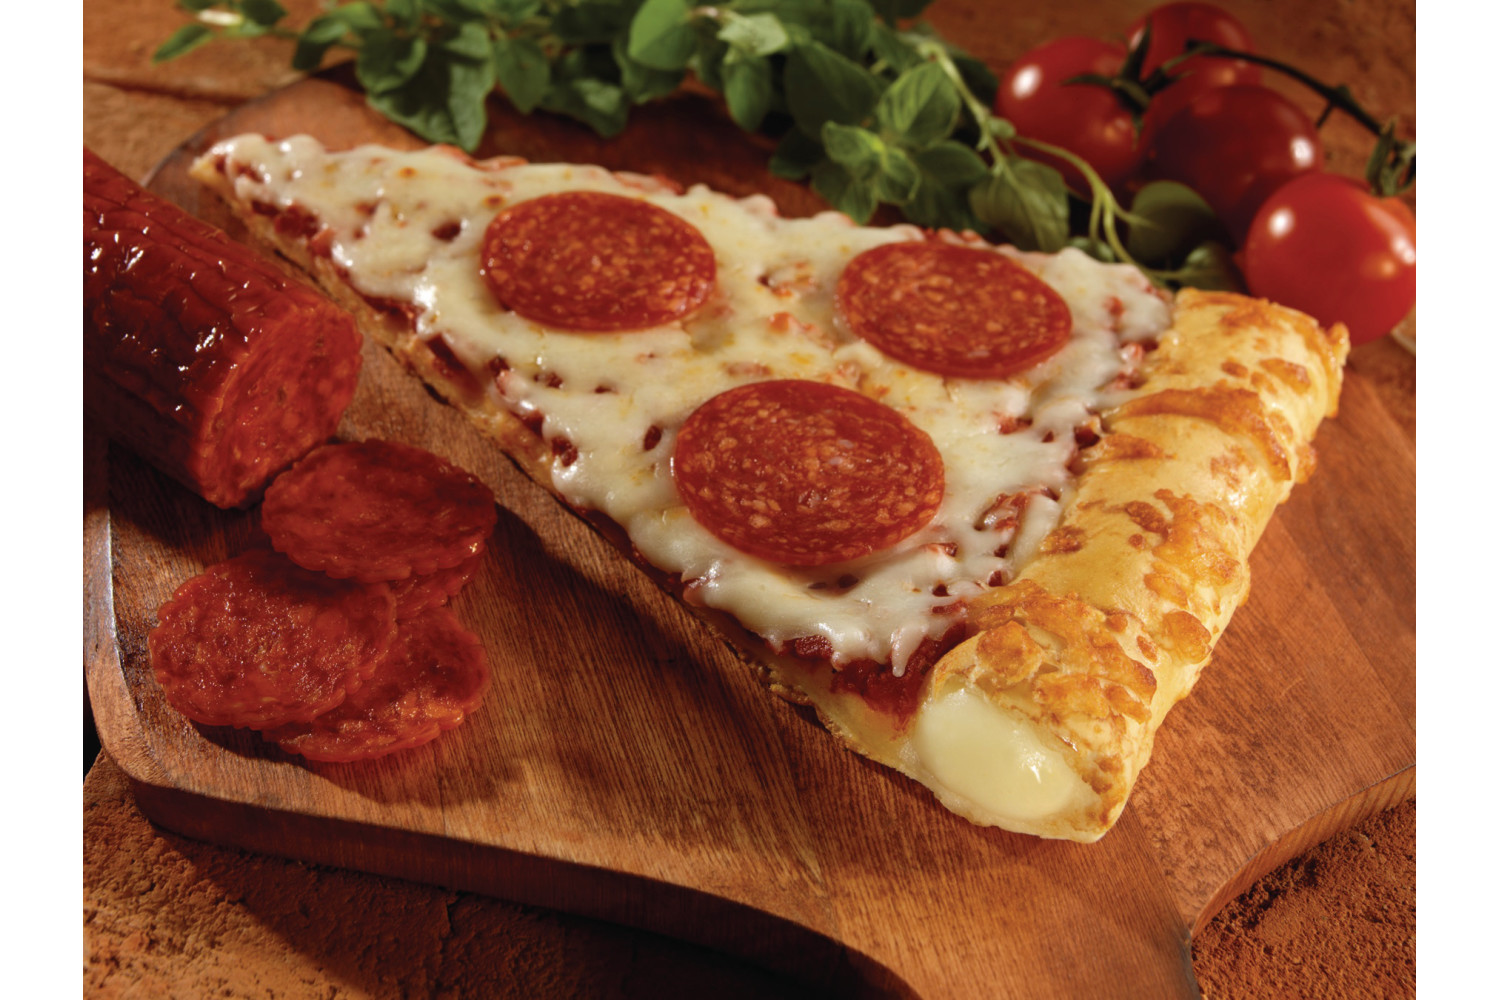 Stuffed Crust, Pepperoni, Reduced Fat, 4.87 oz